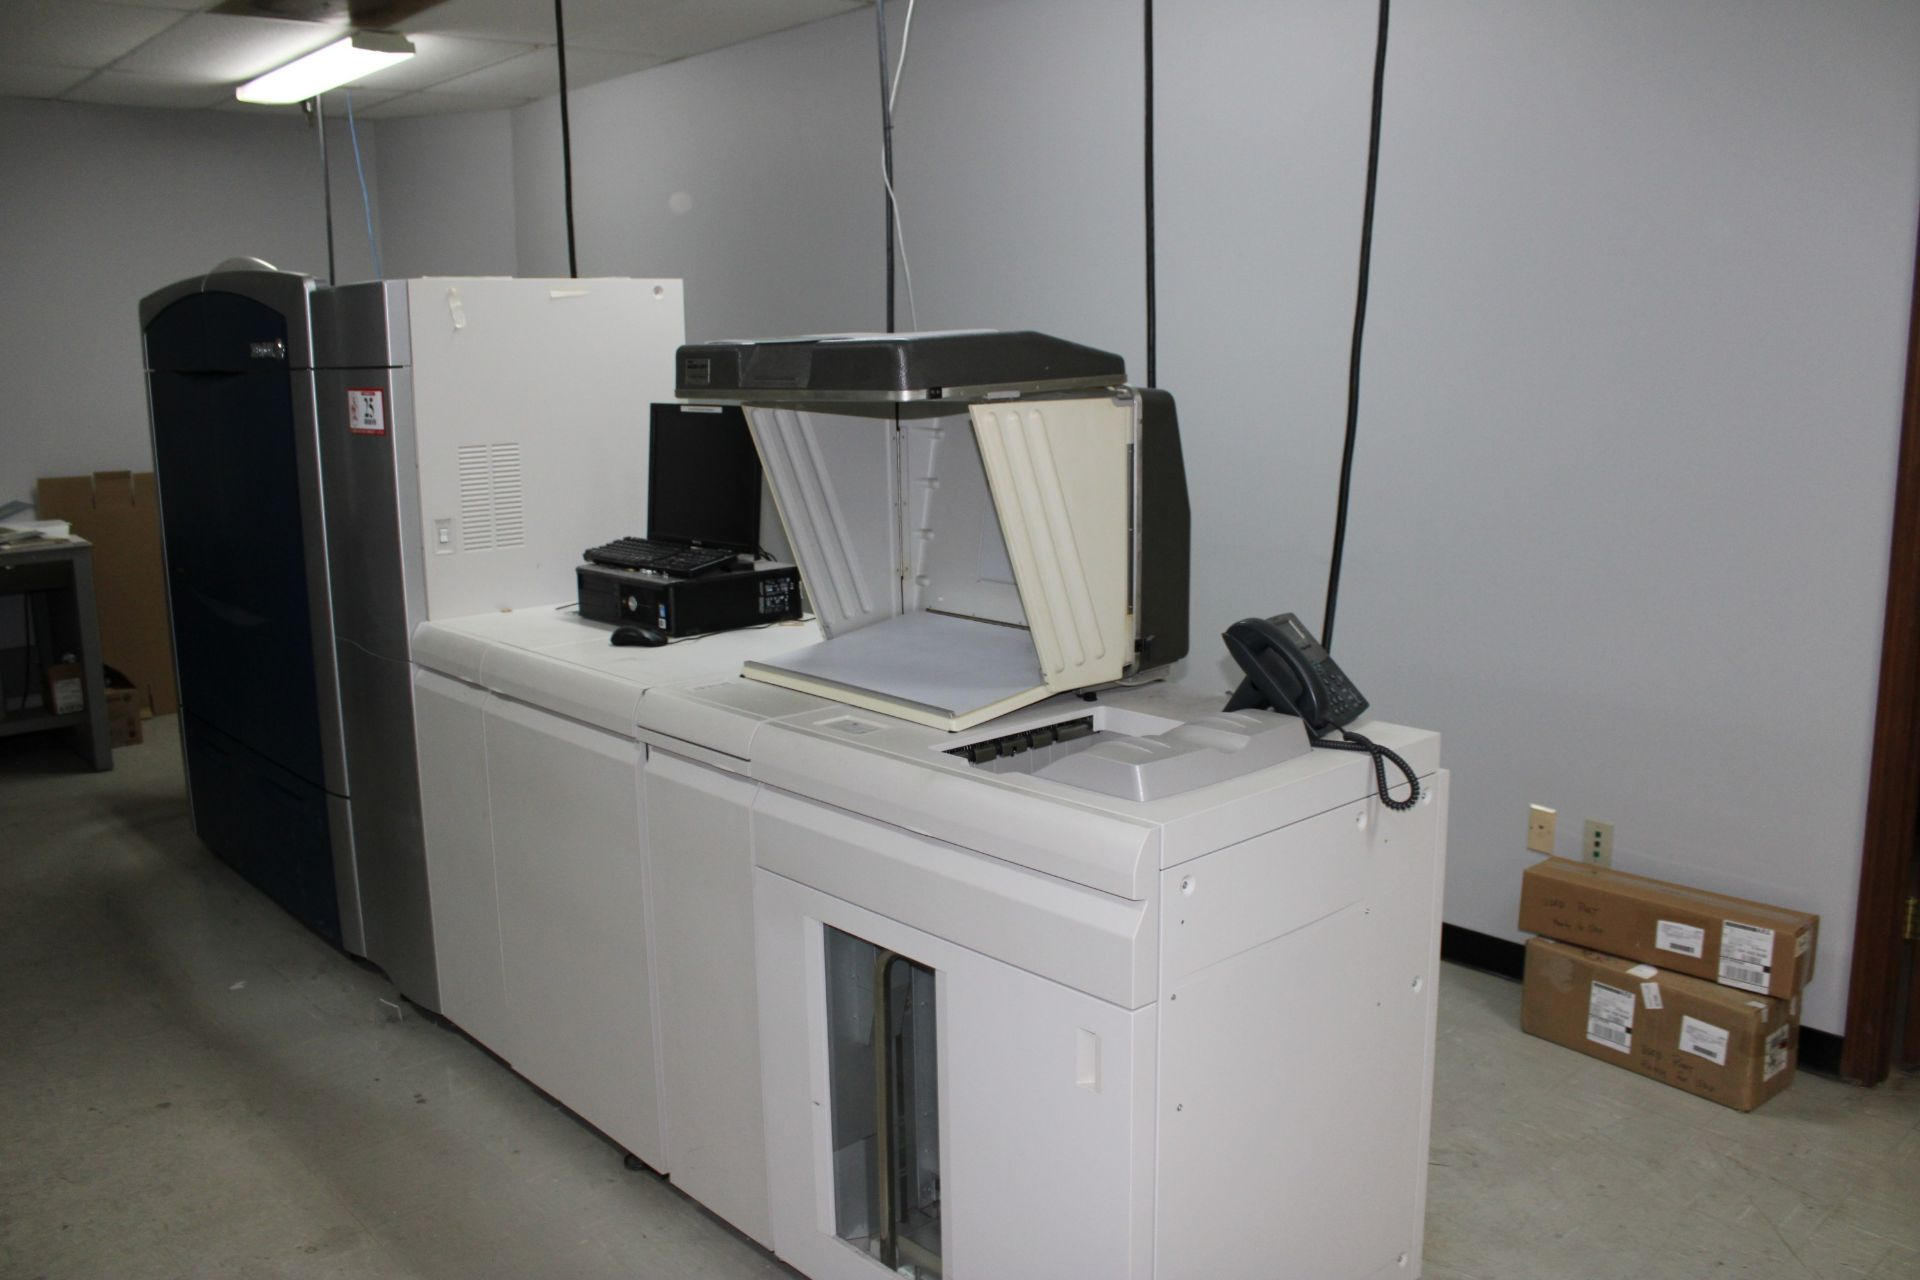 Lot 25 - XEROX Color 800 Digital Copier w/ Dell Computer/Monitor/Keyboard/Mouse/ Laser Jet Press